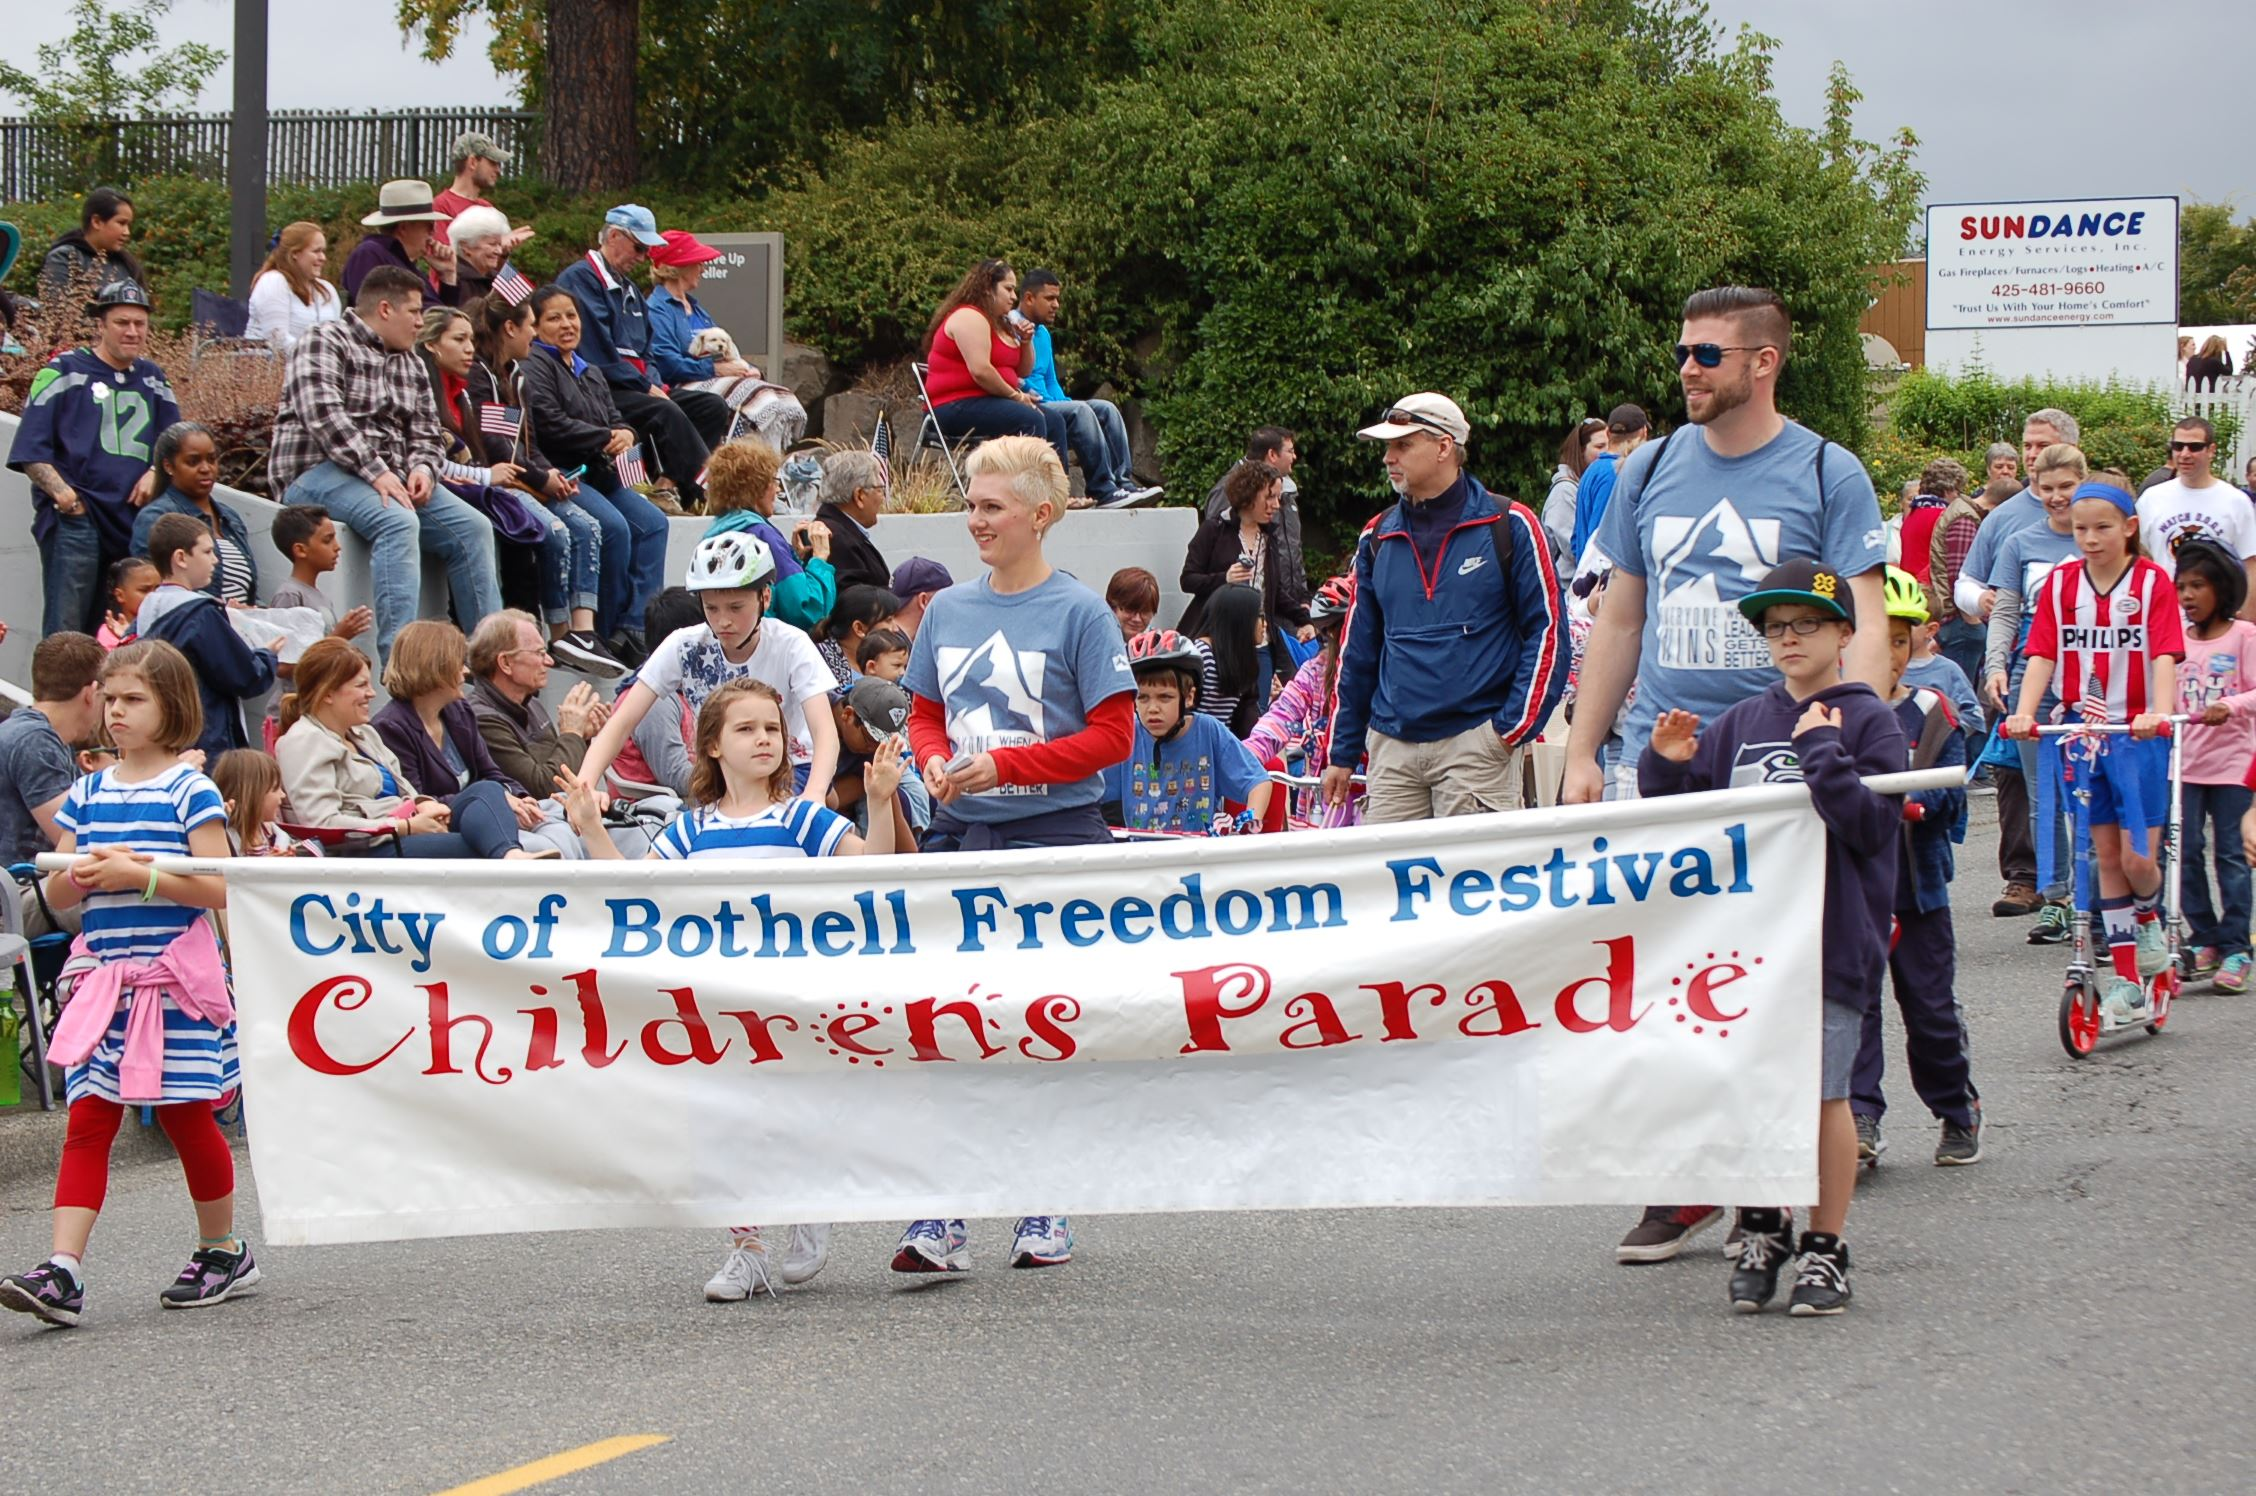 People walking with banner in Children's parade